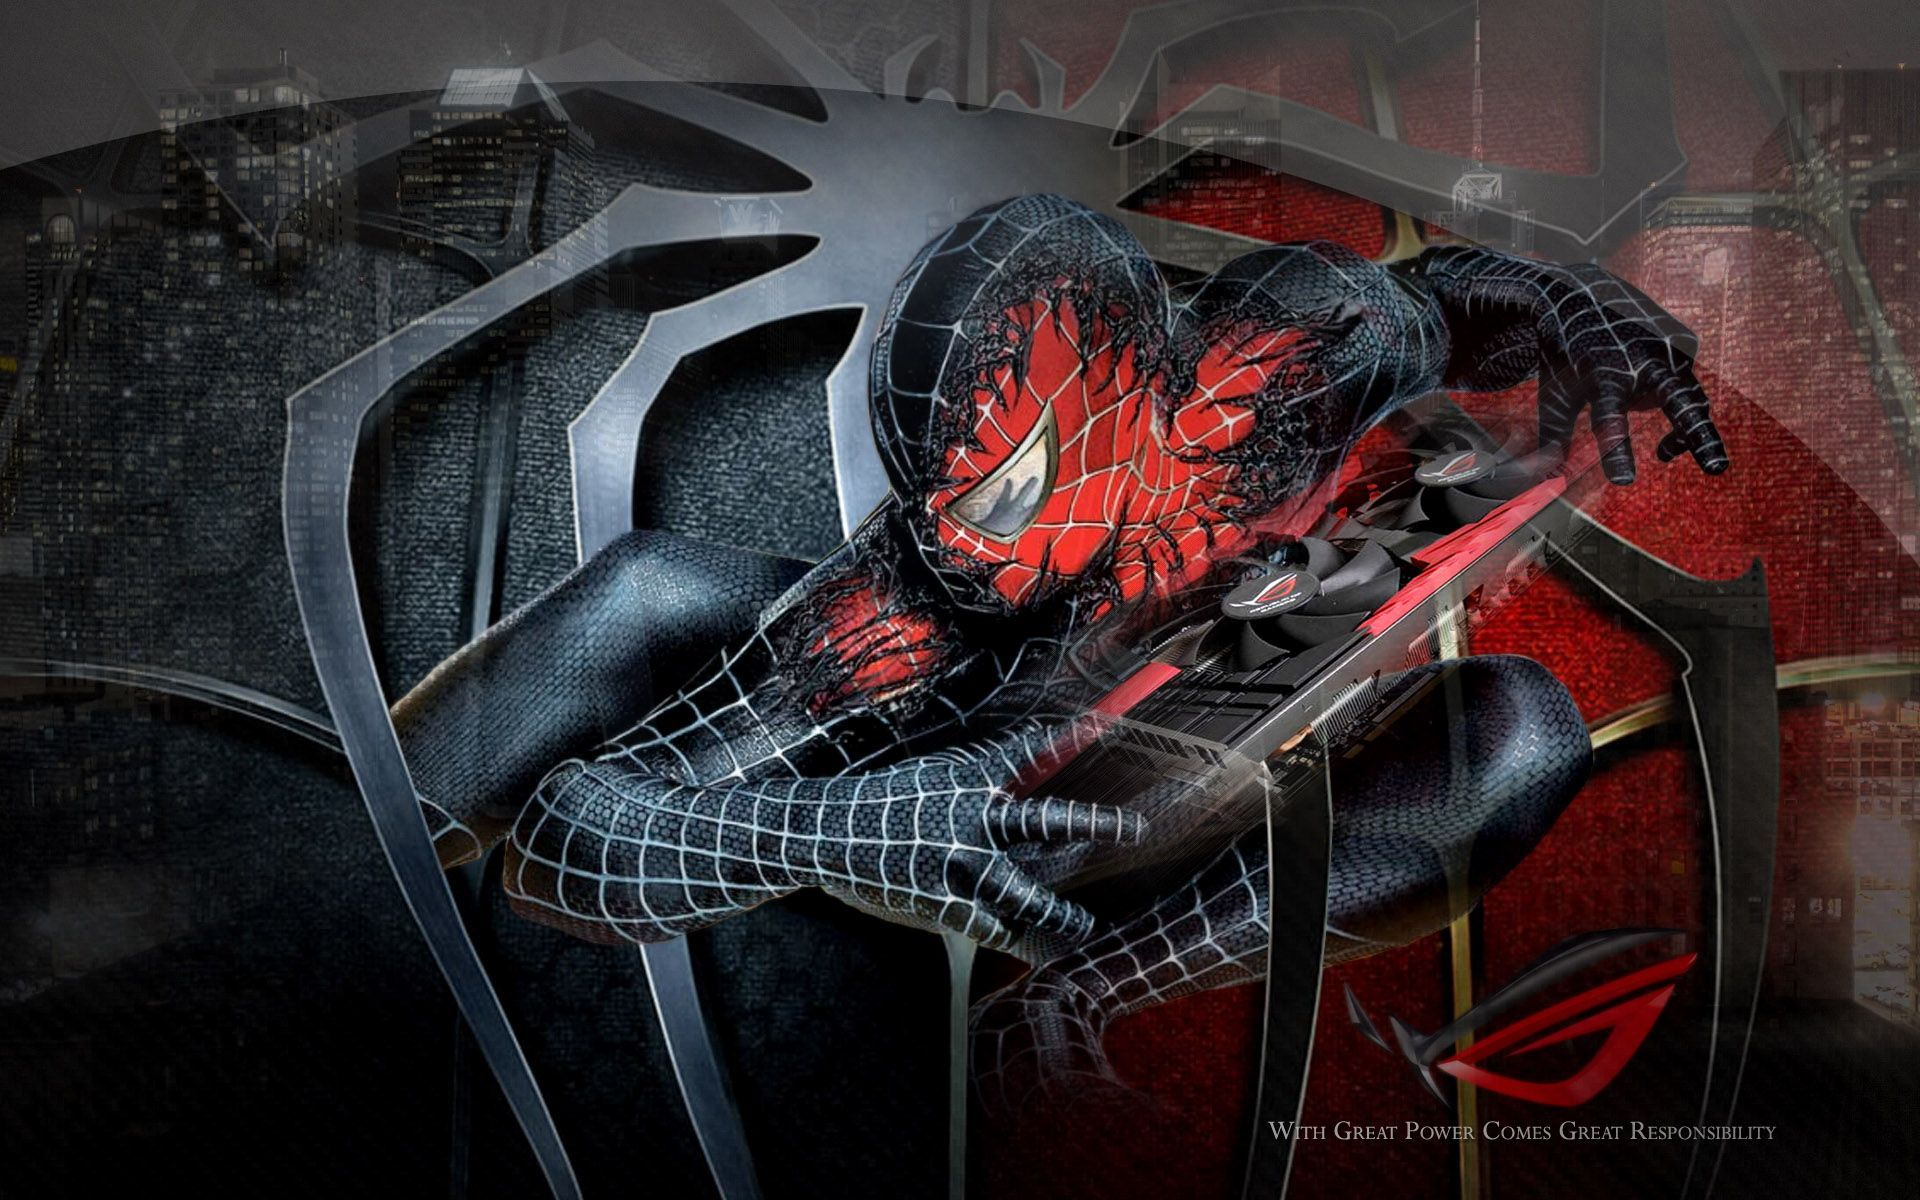 Hd wallpaper spiderman - Spiderman Wallpaper Collection For Free Download Hd Wallpapers Pinterest Man Wallpaper Hd Wallpaper And Wallpaper